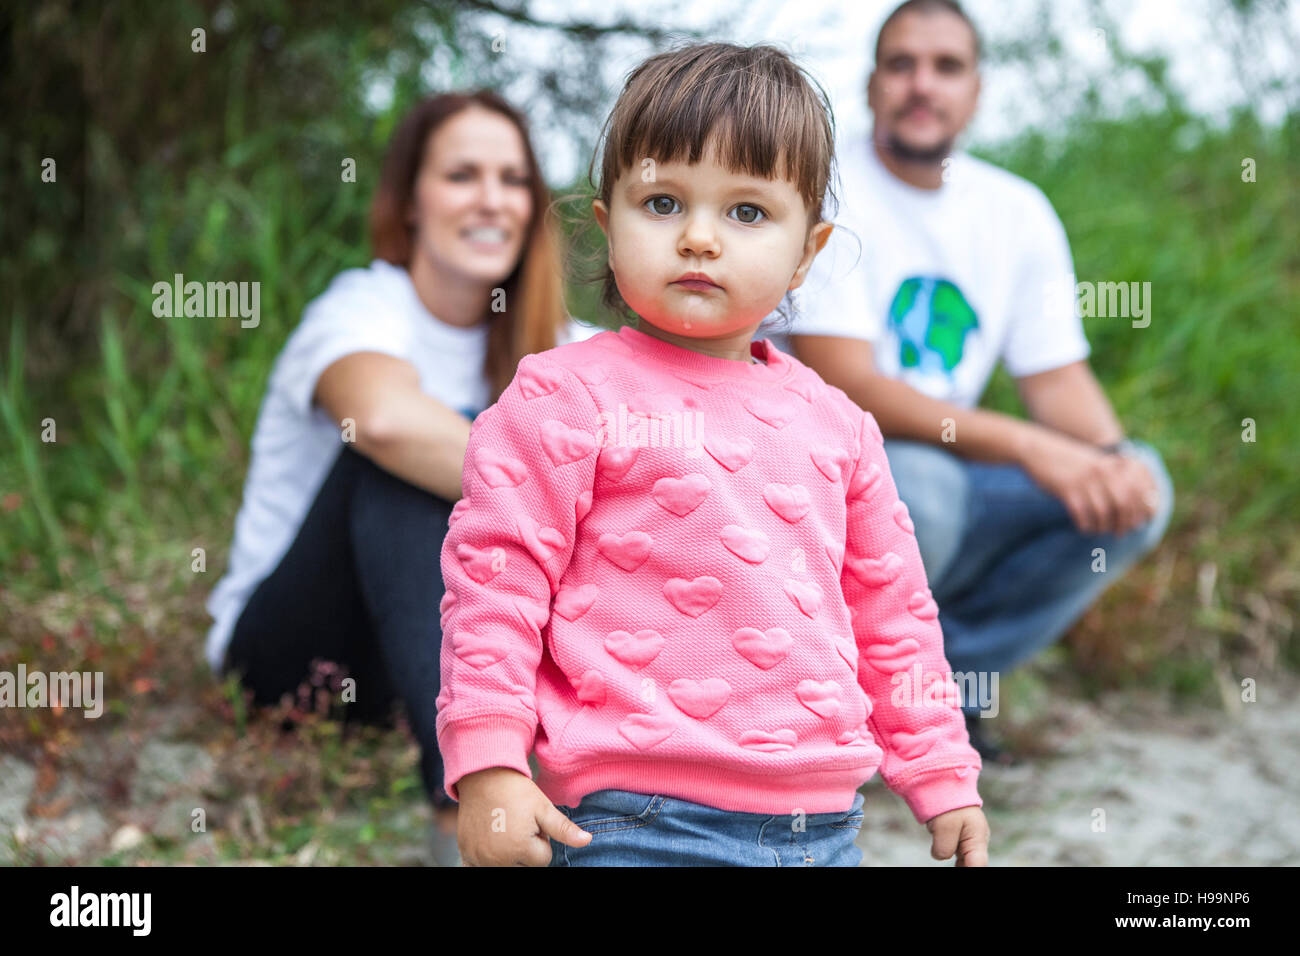 Toddler girl with parents in background - Stock Image